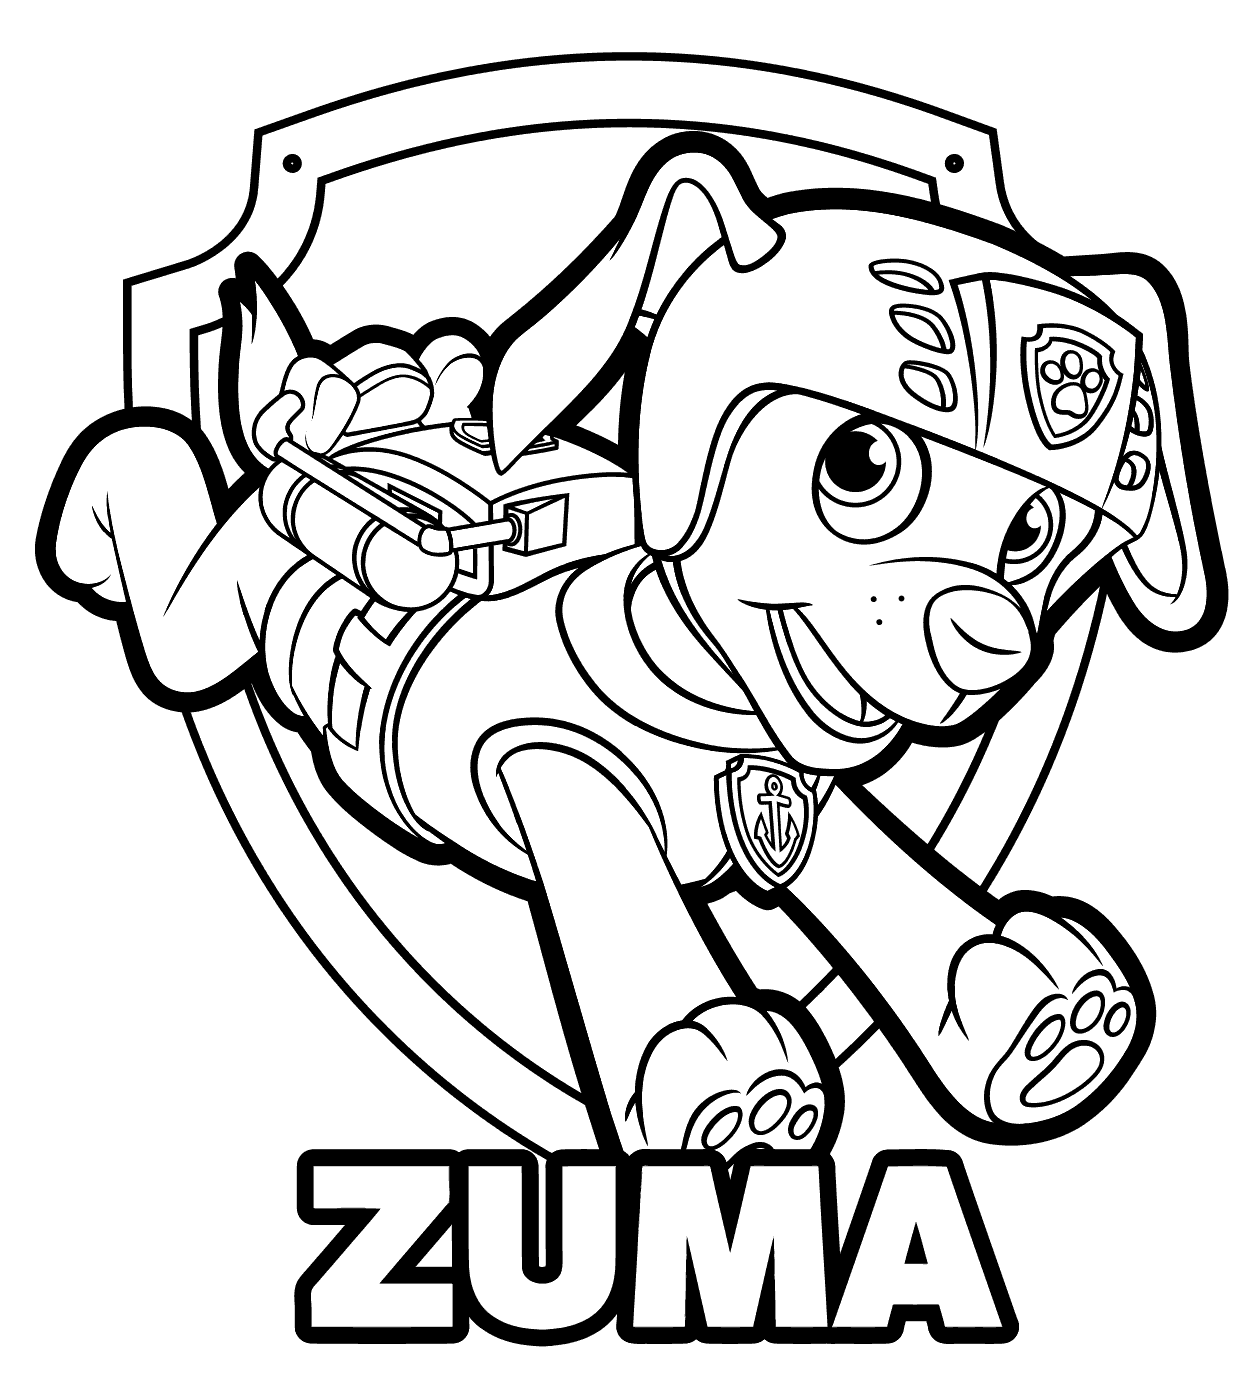 Ausmalbilder Paw Patrol Sky : Paw Patrol Coloring Pages Free Download Best Paw Patrol Coloring